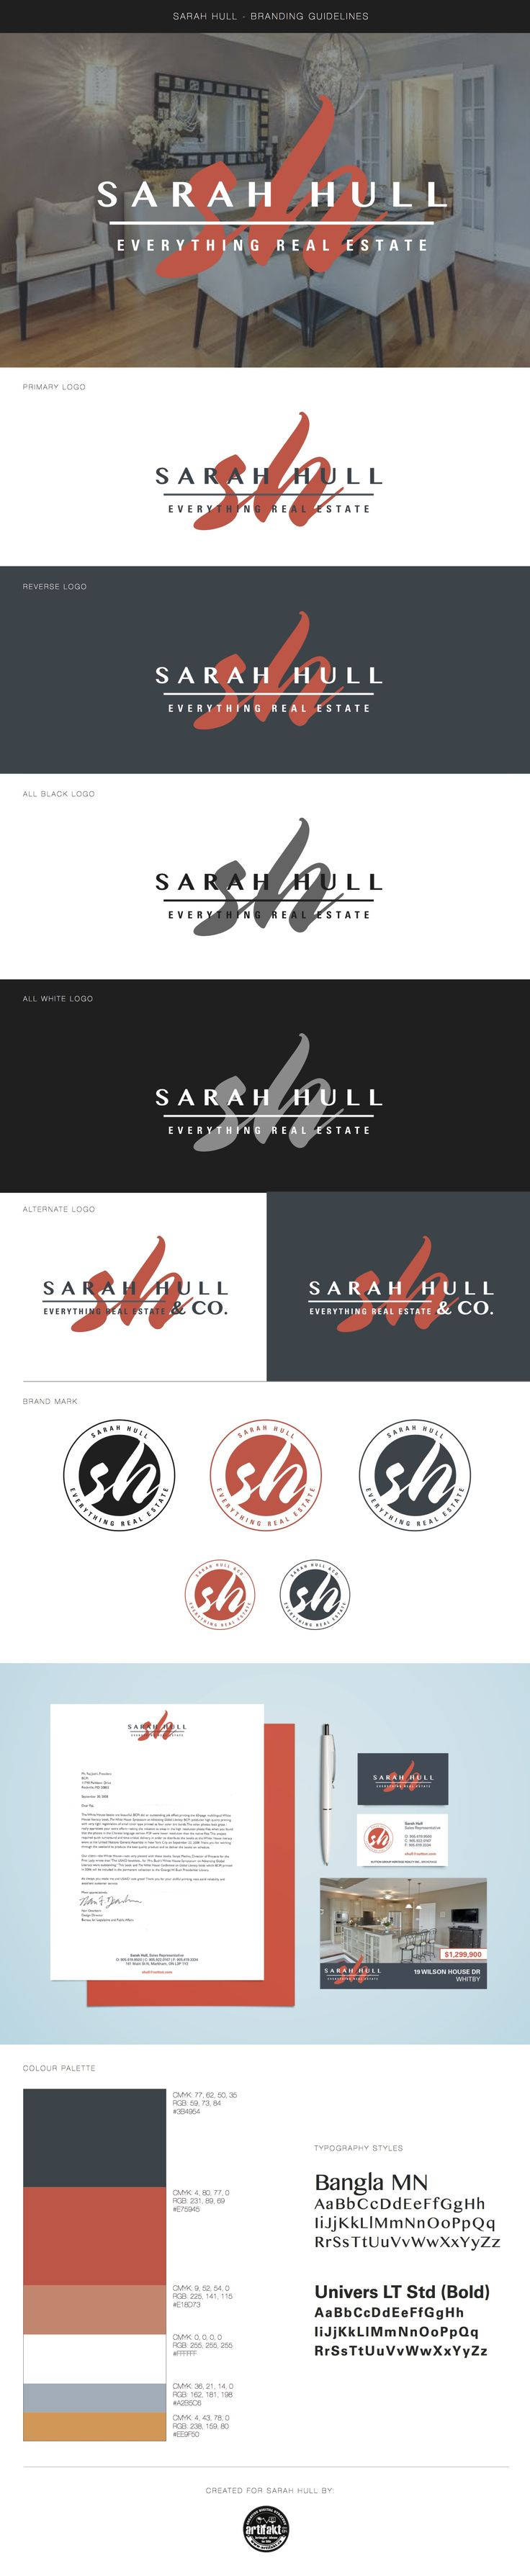 The completed branding guidelines we did for Sarah Hull.